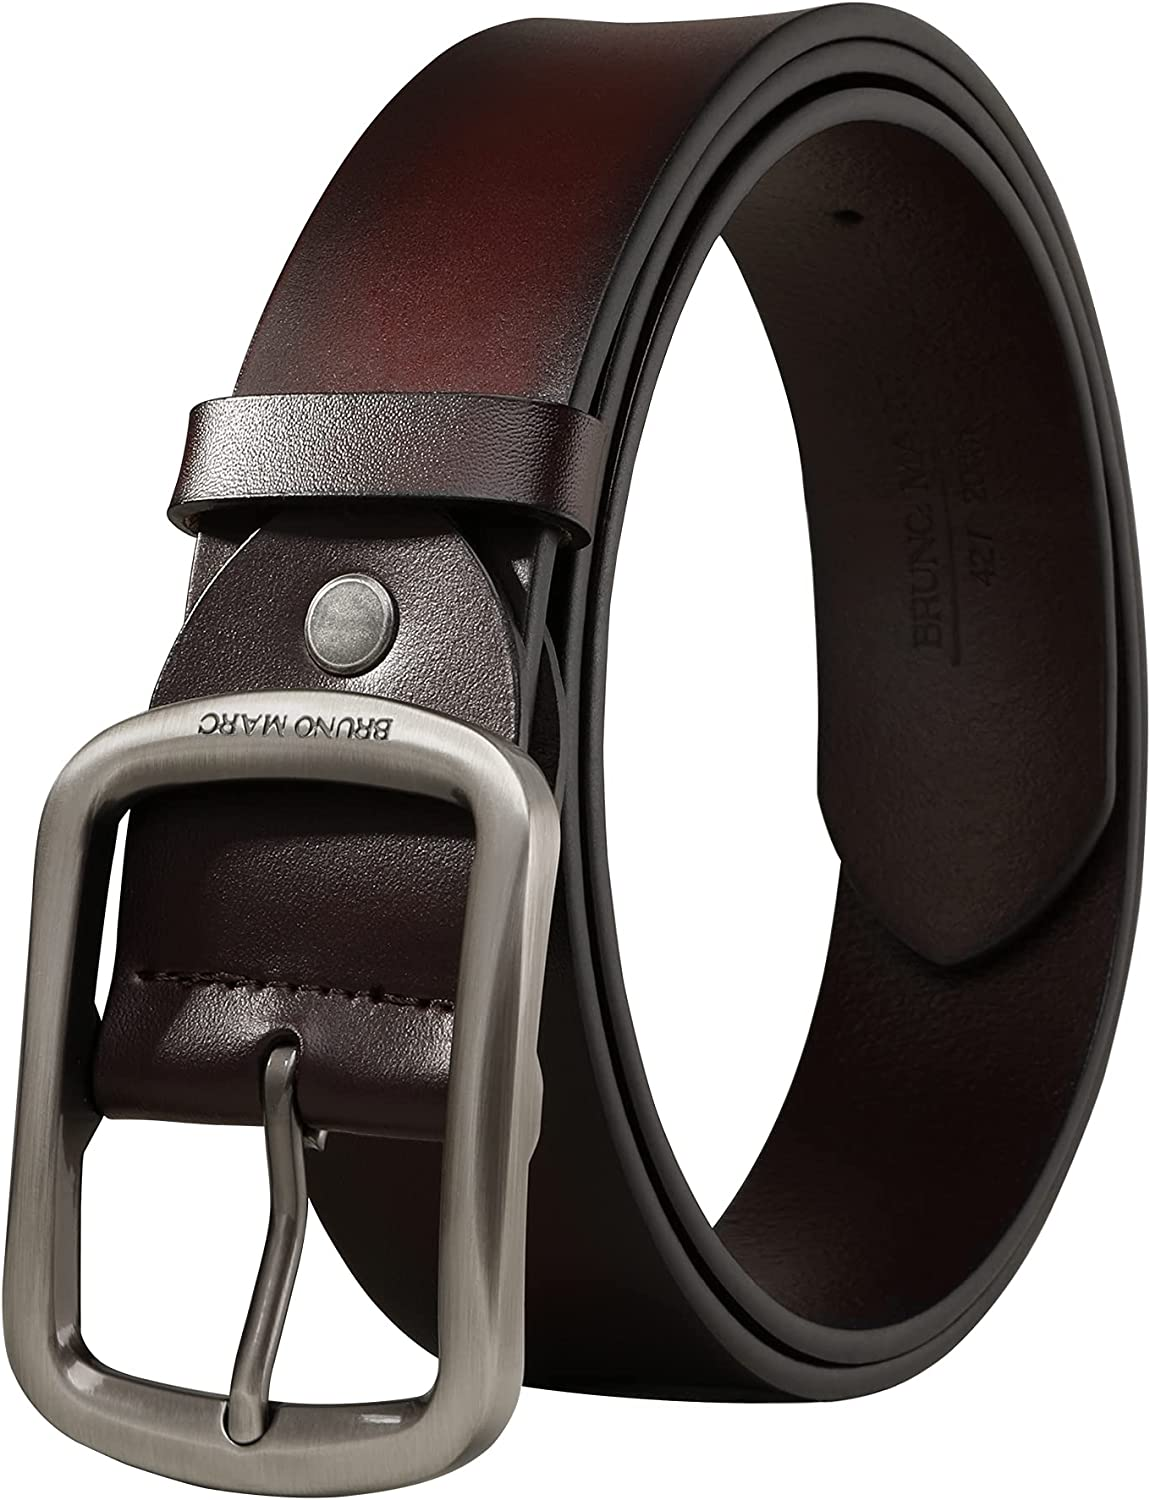 Bruno Marc Men's Dress Leather Belt Casual Jeans Belts for Men with Prong Buckle